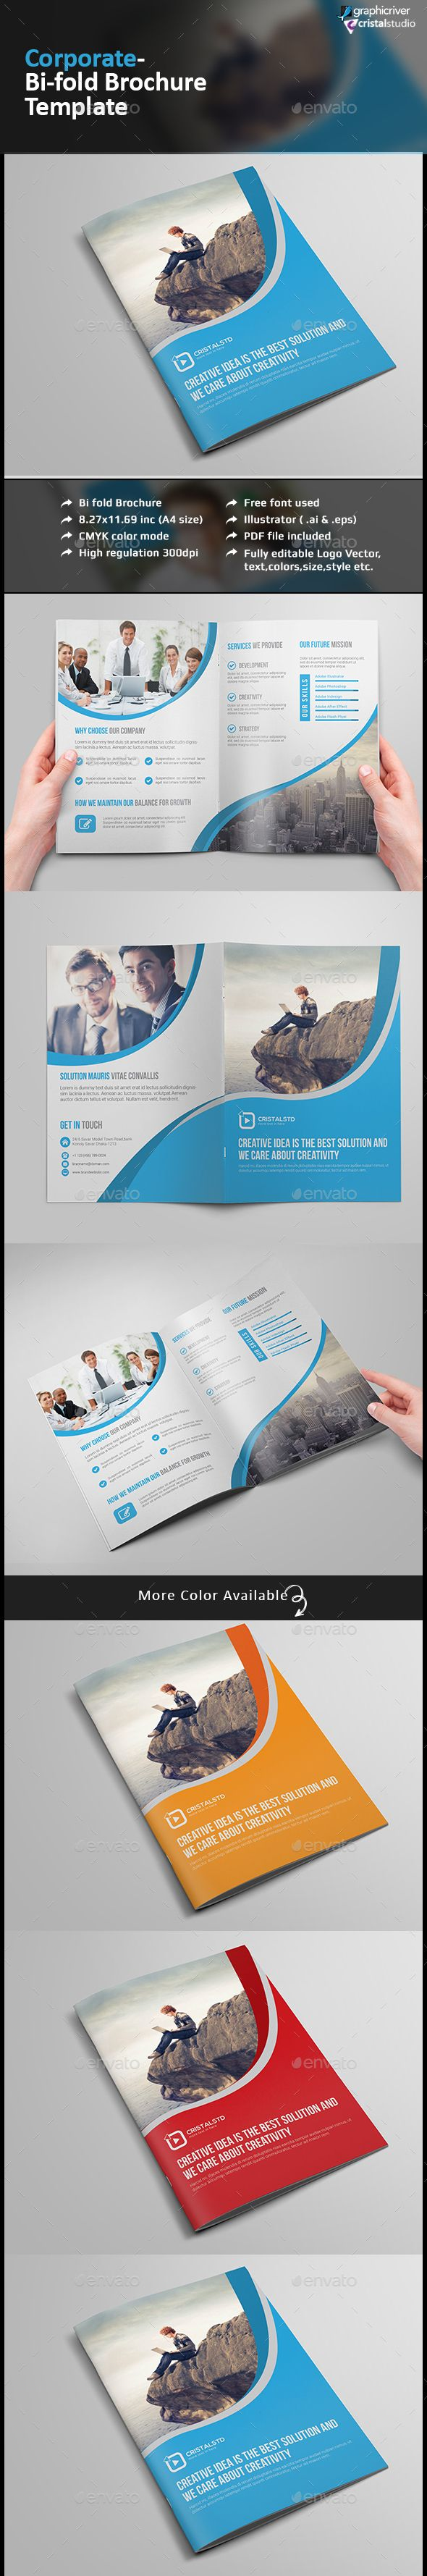 Corporate Bifold BrochureMultipurpose Brochure Template - Bi fold brochure template indesign